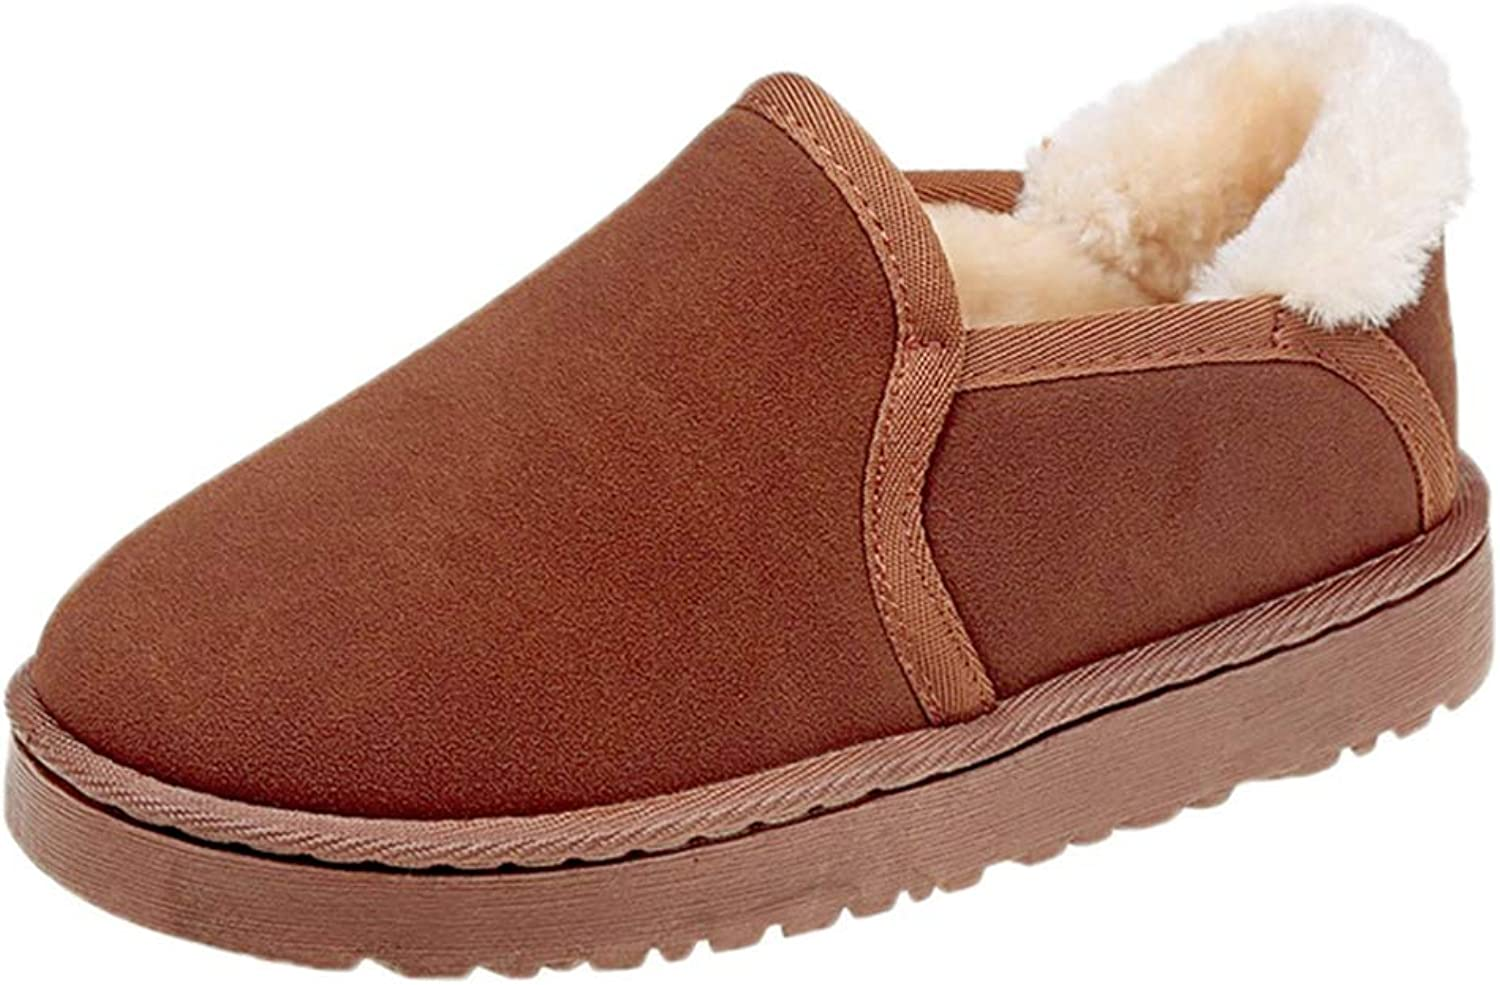 Winter Women Snow Boots Faux Seude Thick Plush Low Heels Slip-On Ankle Boots, Indoor and Outdoor